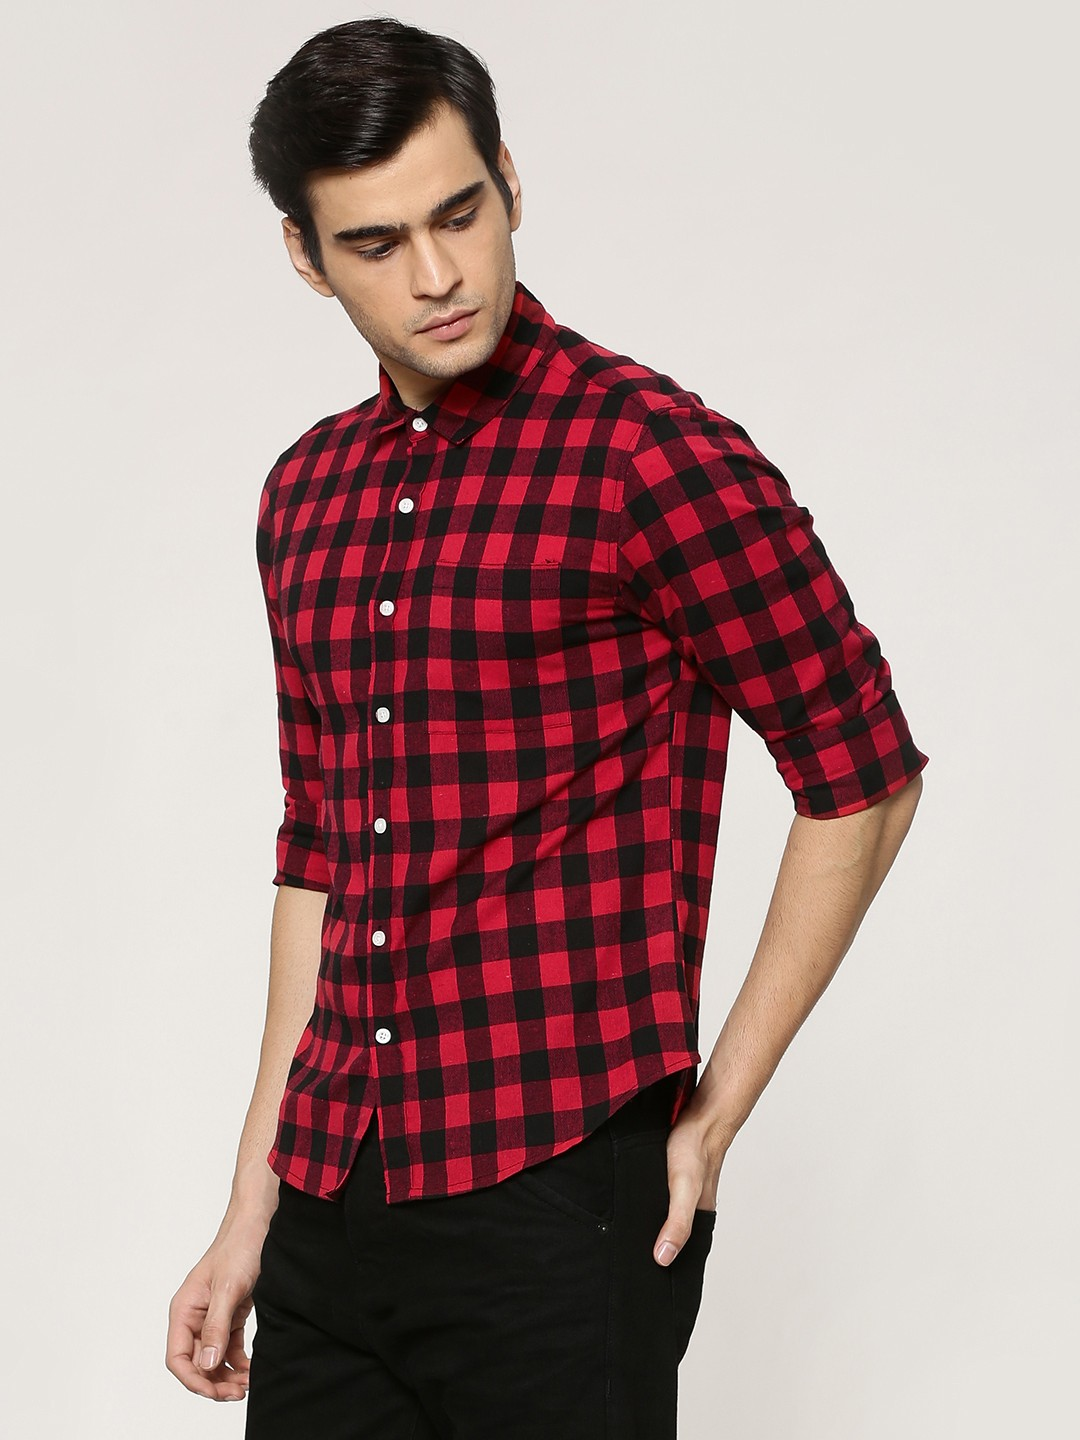 Find great deals on eBay for check shirts. Shop with confidence.